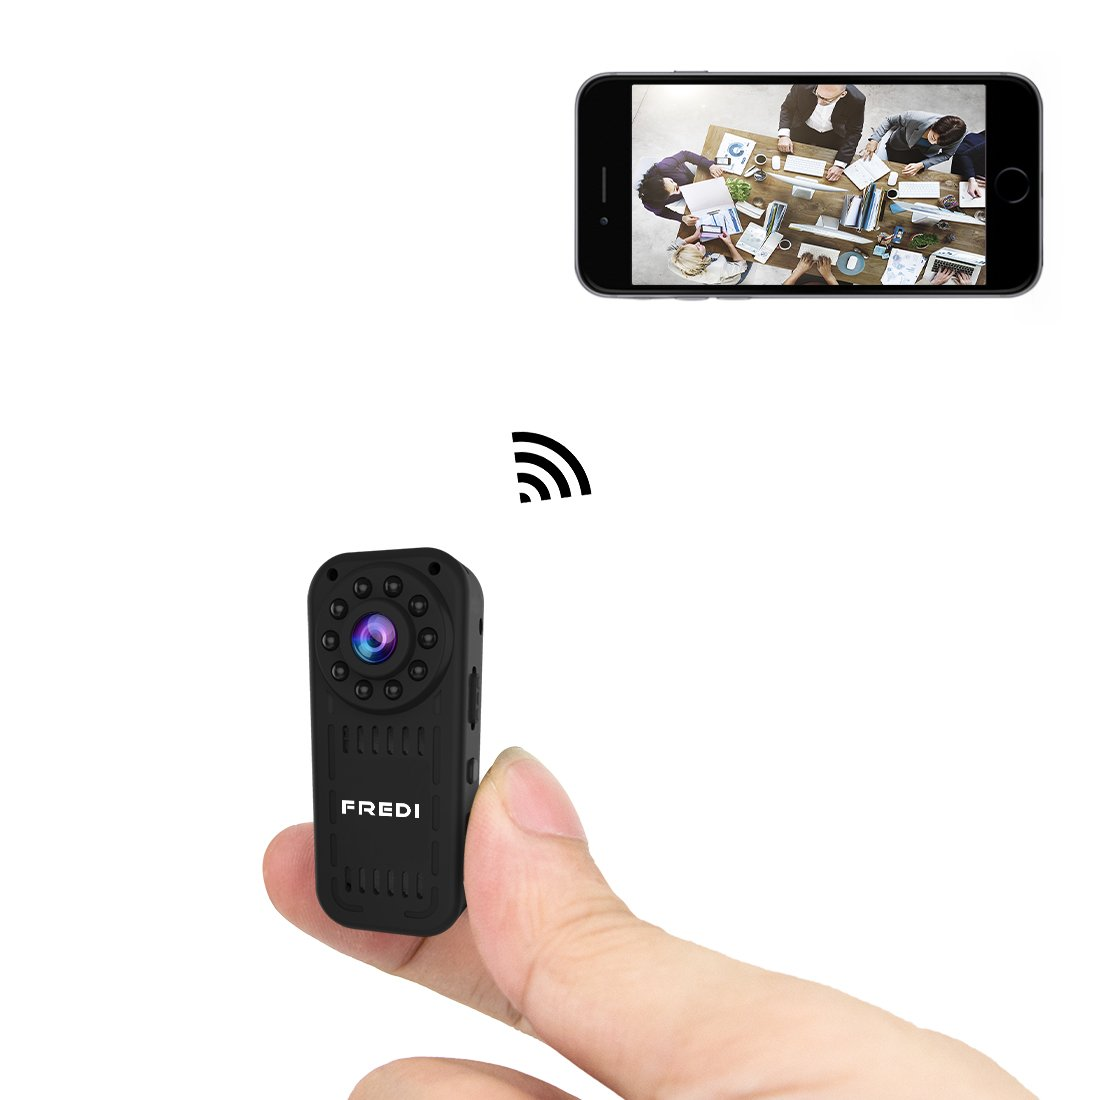 FREDI hidden camera 1080p HD mini wifi camera spy camera ...